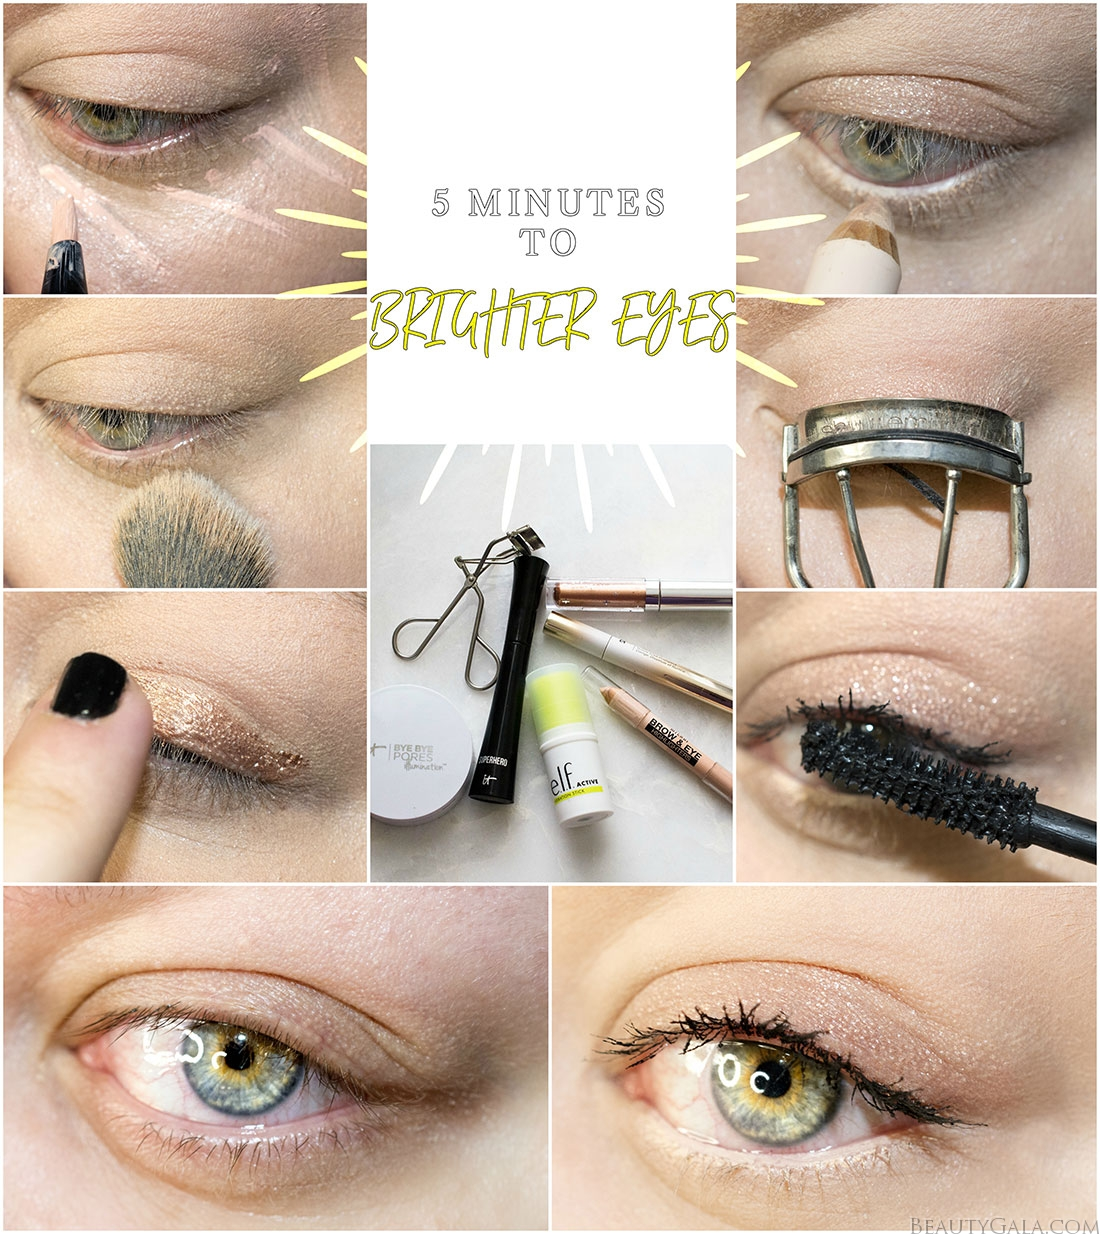 5 minute makeup, quick makeup, brighten eyes, brighter eyes